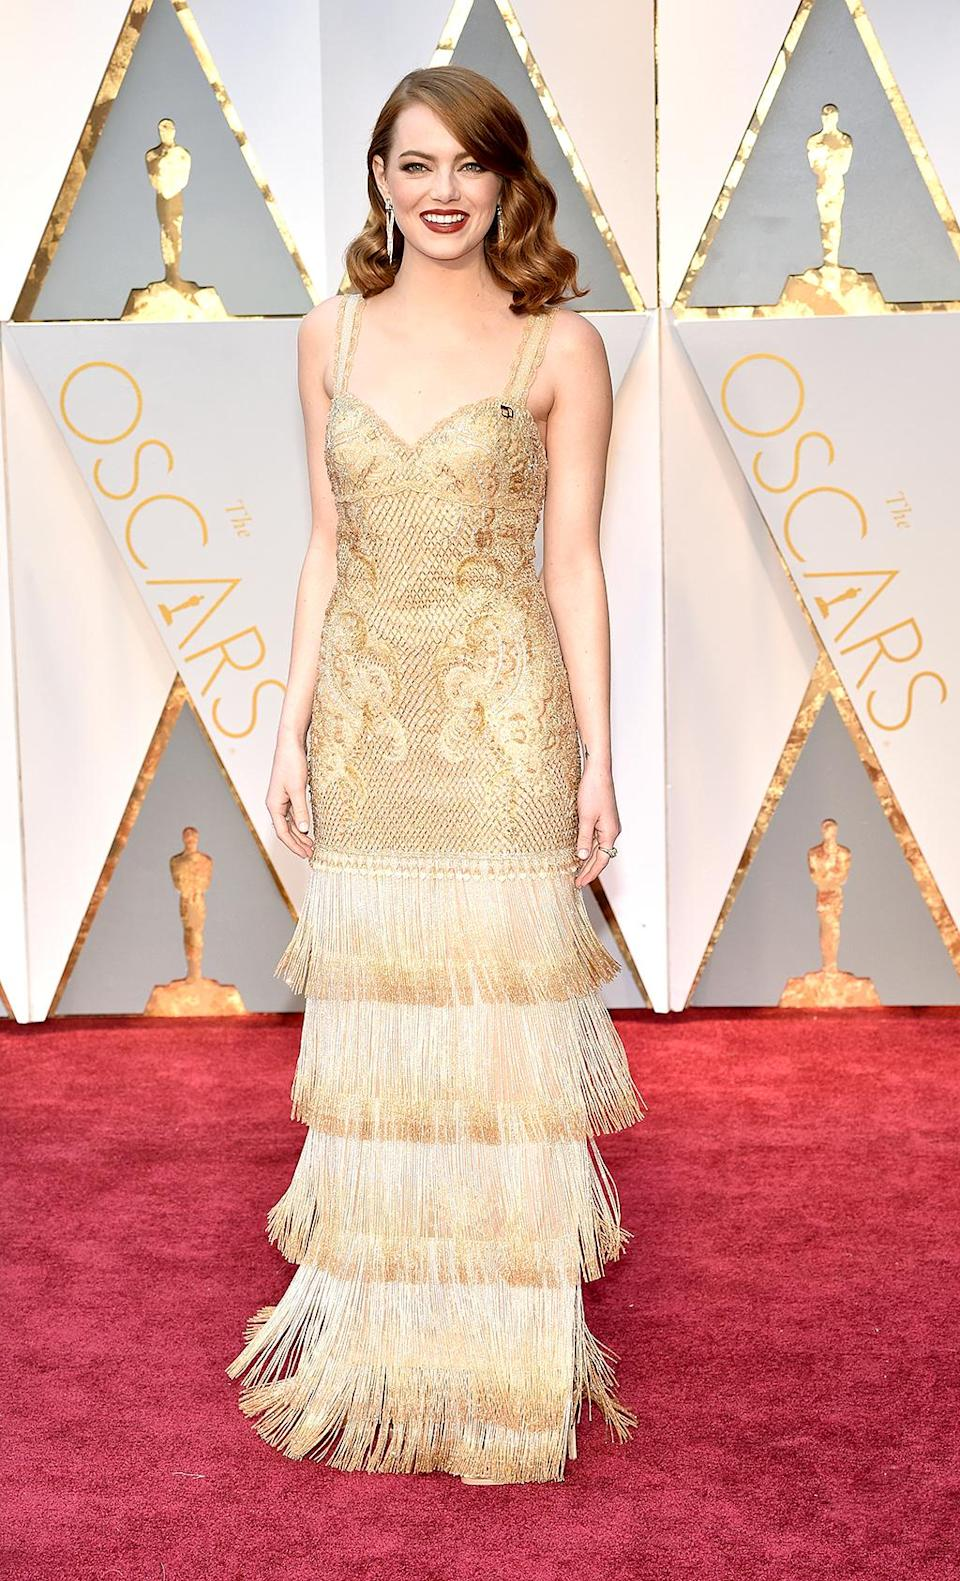 """<p>Emma Stone attends the 89th Annual Academy Awards at Hollywood & Highland Center on Feb. 26, 2017 in Hollywood, California. (Photo by Kevin Mazur/Getty Images)<br><br><a rel=""""nofollow"""" href=""""https://www.yahoo.com/style/oscars-2017-vote-for-the-best-and-worst-dressed-225105125.html"""" data-ylk=""""slk:Go here to vote for best and worst dressed.;outcm:mb_qualified_link;_E:mb_qualified_link;ct:story;"""" class=""""link rapid-noclick-resp yahoo-link"""">Go here to vote for best and worst dressed.</a> </p>"""